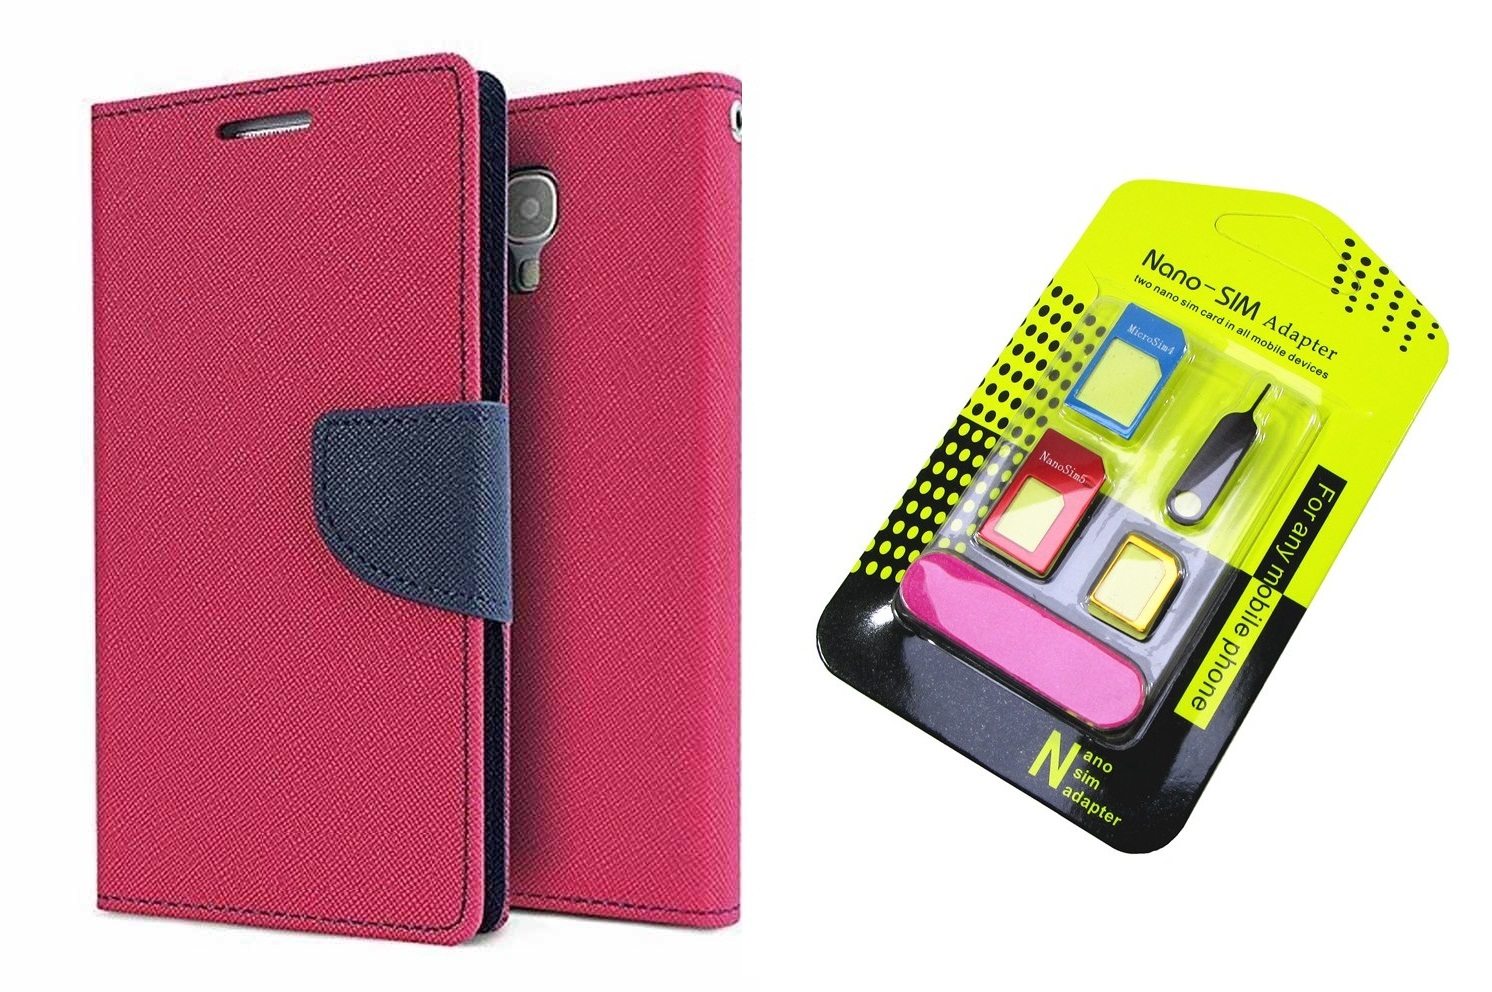 Flip Back Cover For Sony Xperia M2 Dual / Xperia M2 Dual   PINK   With Nano Sim Adapter